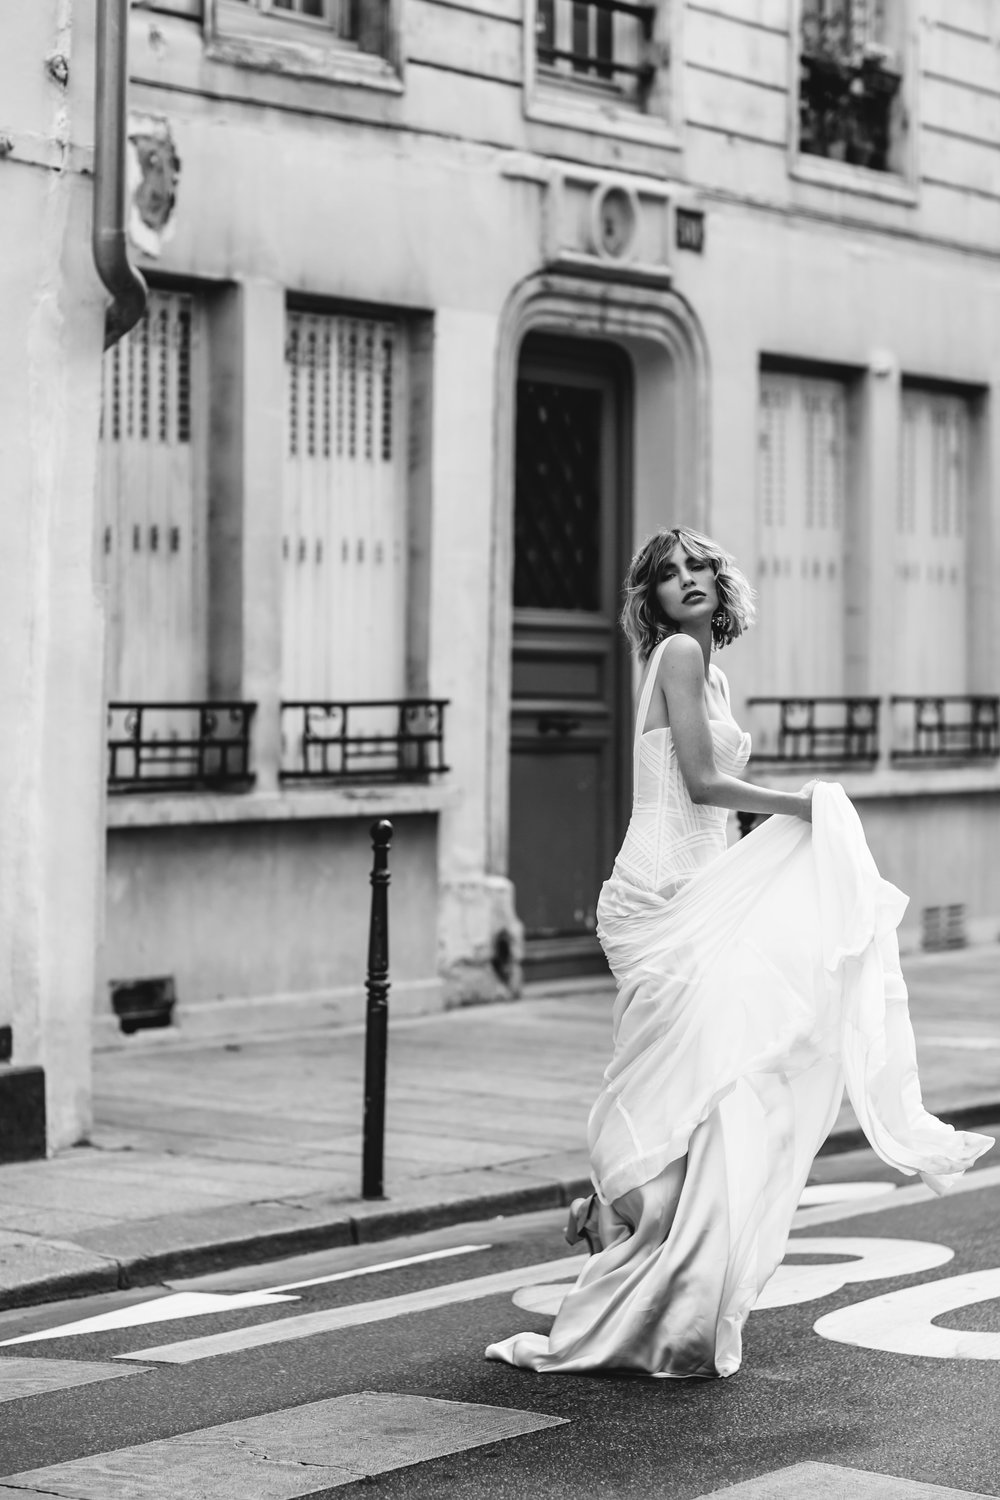 georgia-young-couture-bride-wedding-dressilookbook-paris-ritual-bride-37